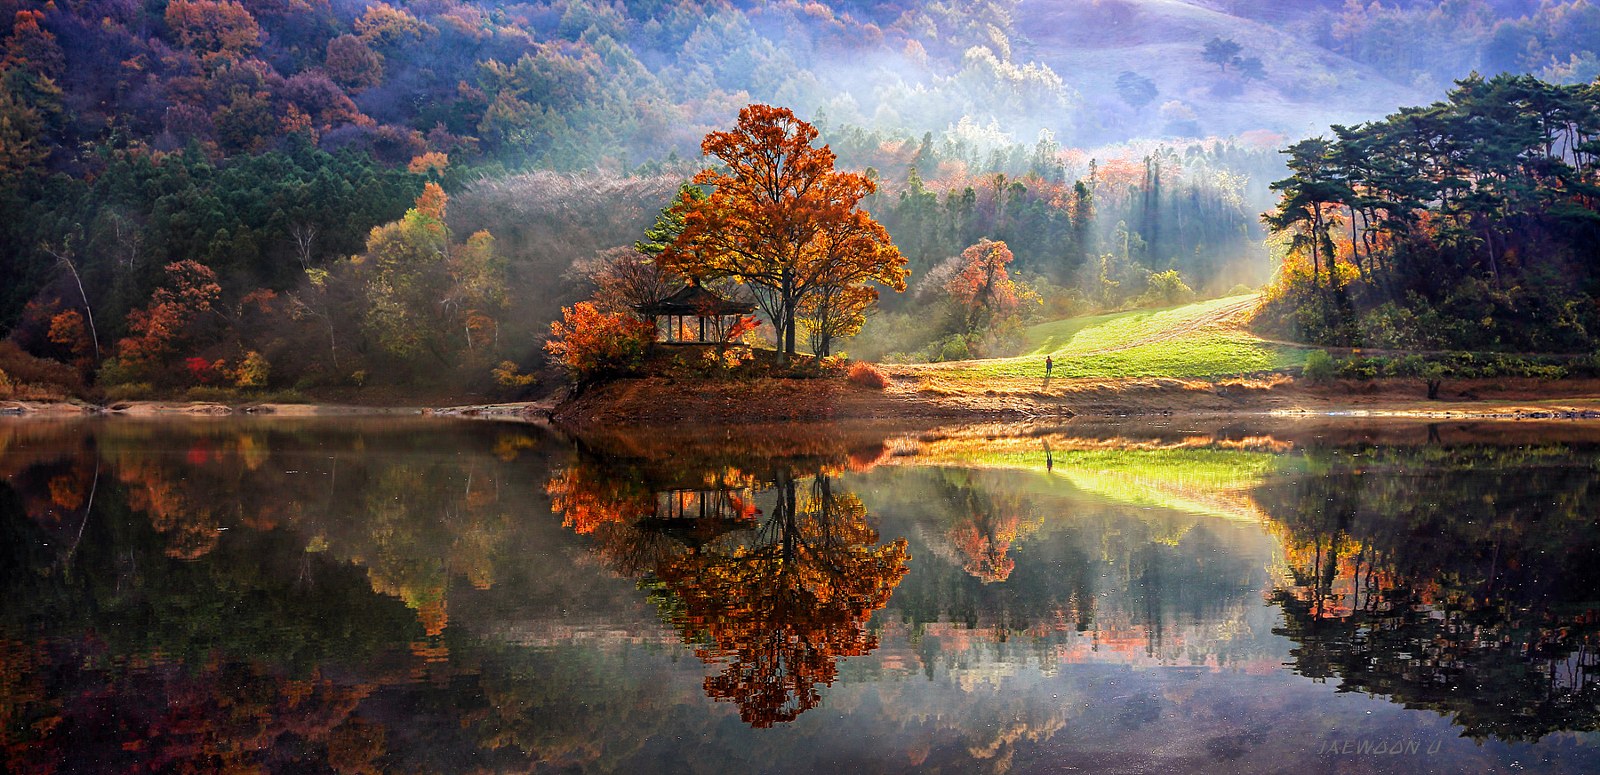 500px blog 187 187 10 perfect reflected landscapes by jaewoon u